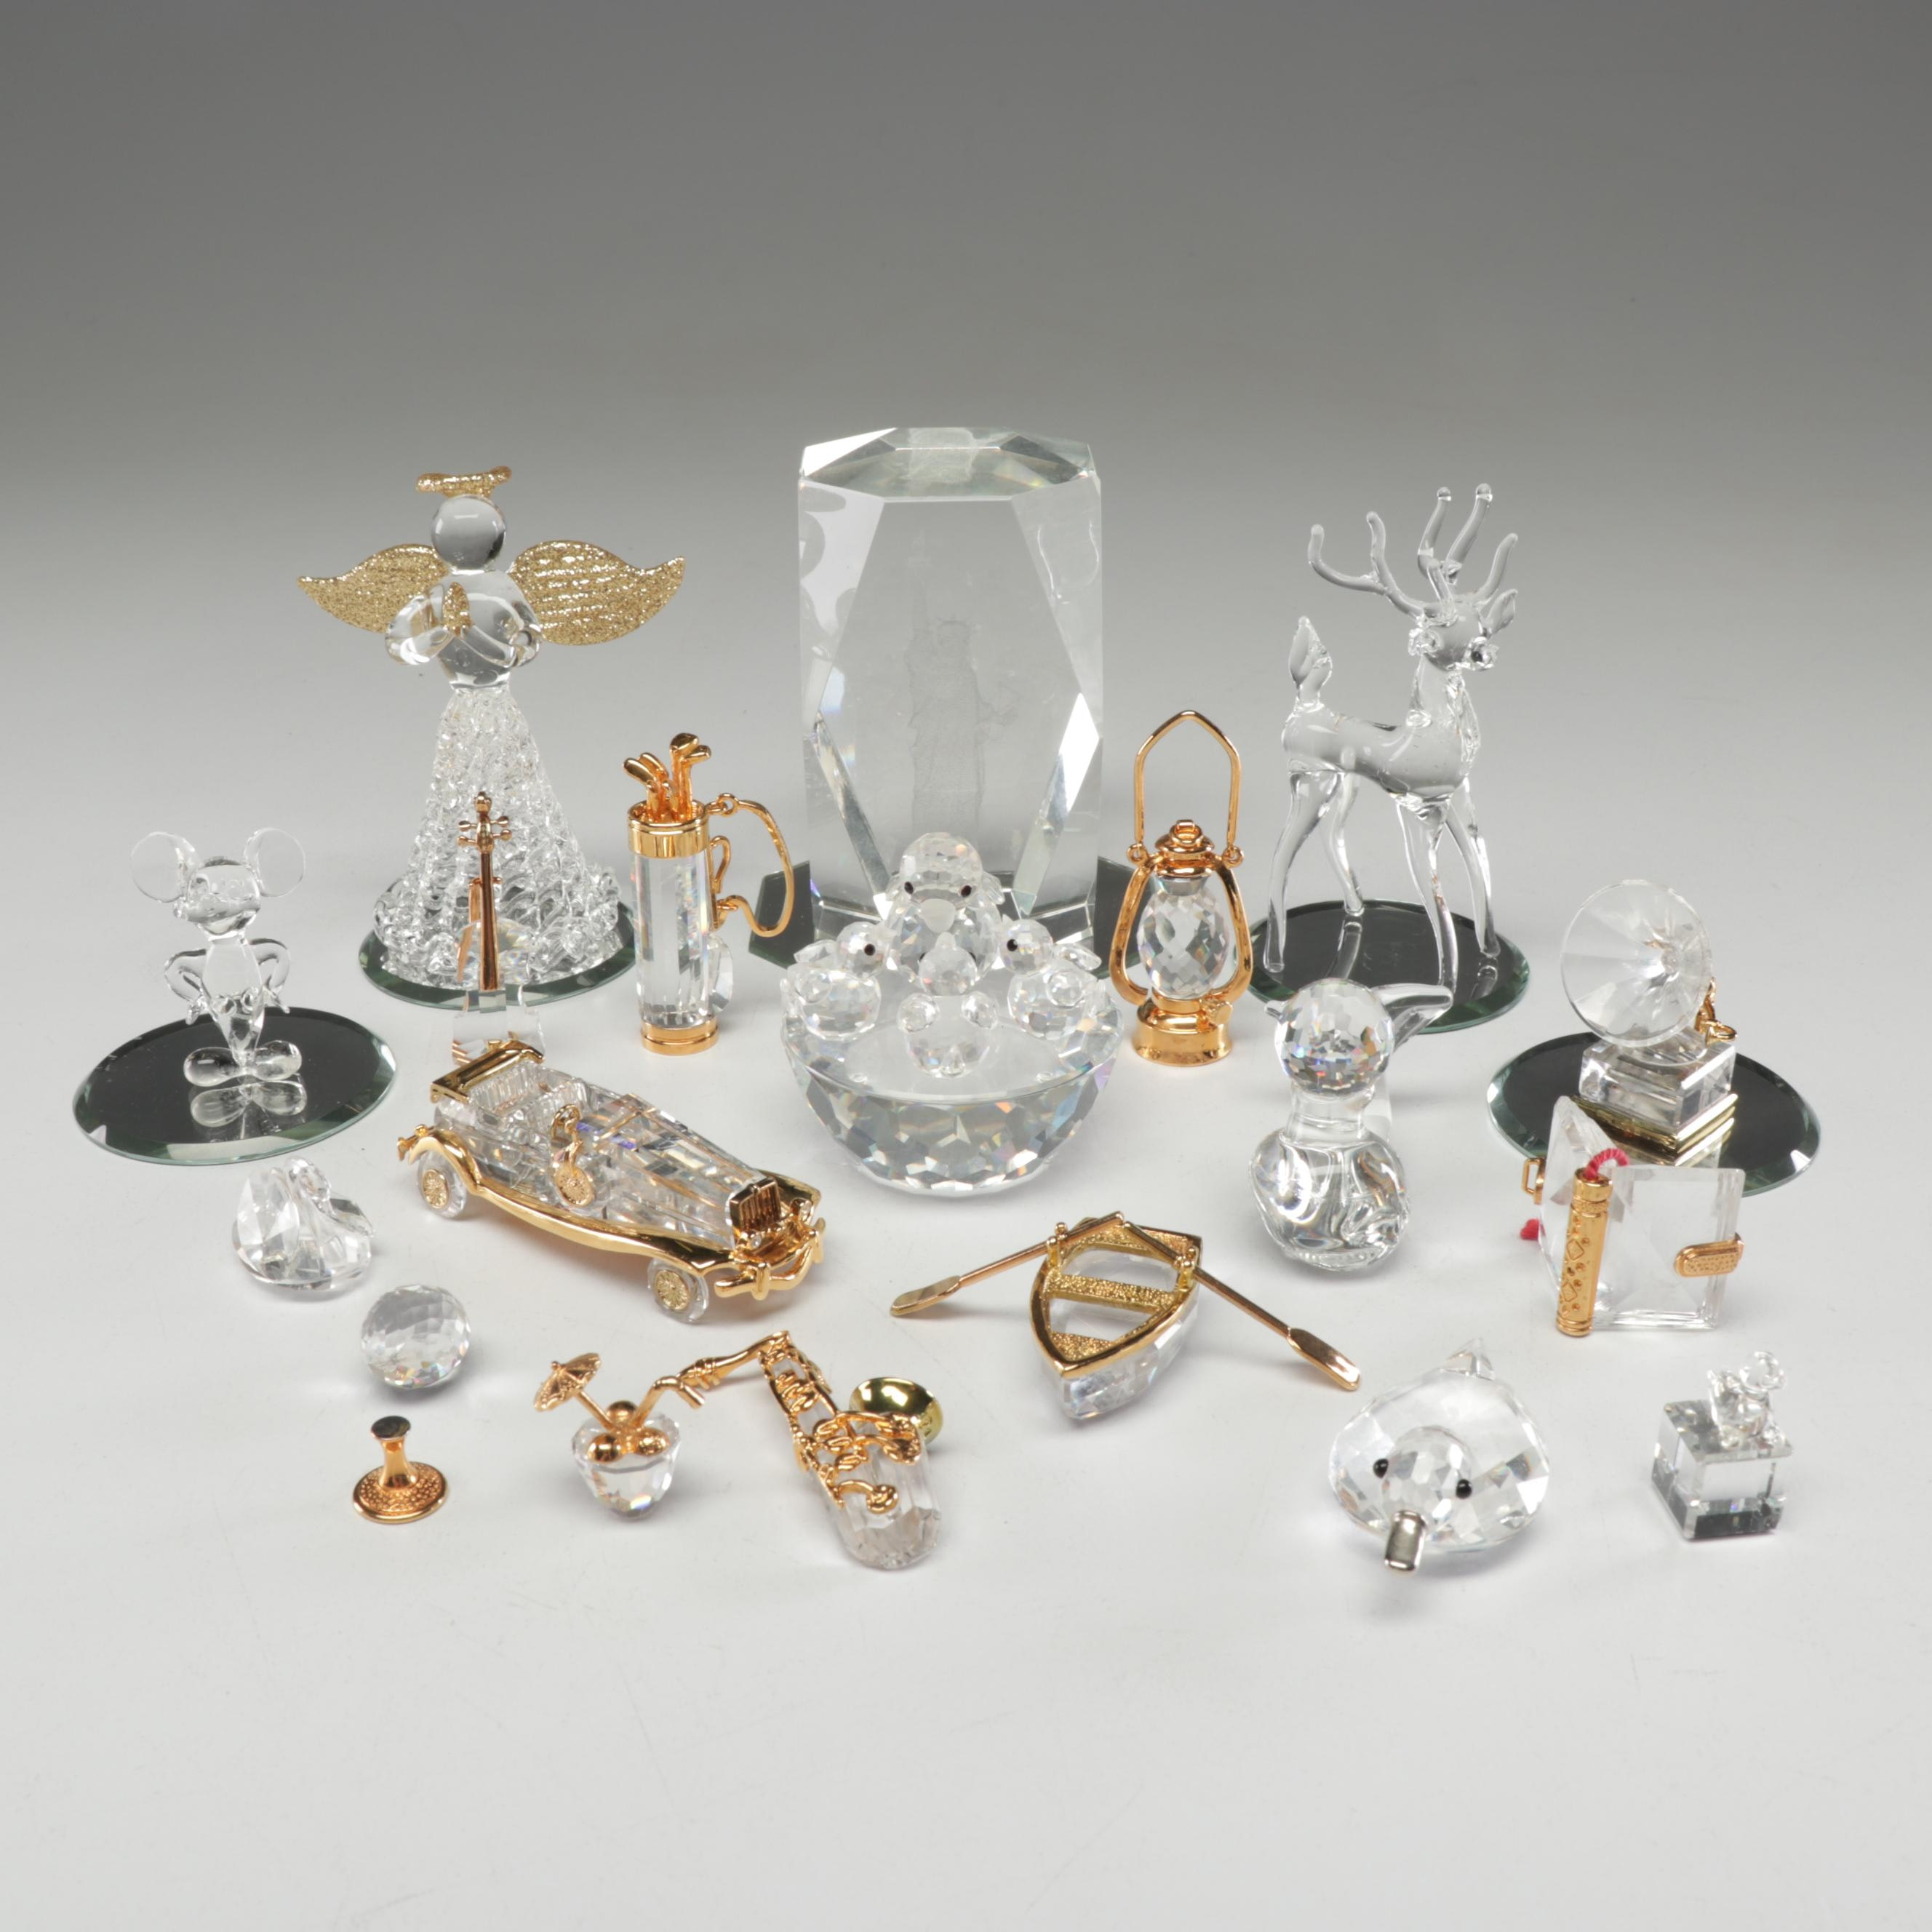 Swarovski Crystal Miniatures with Glass Christmas Figurines and Pocket Mirrors